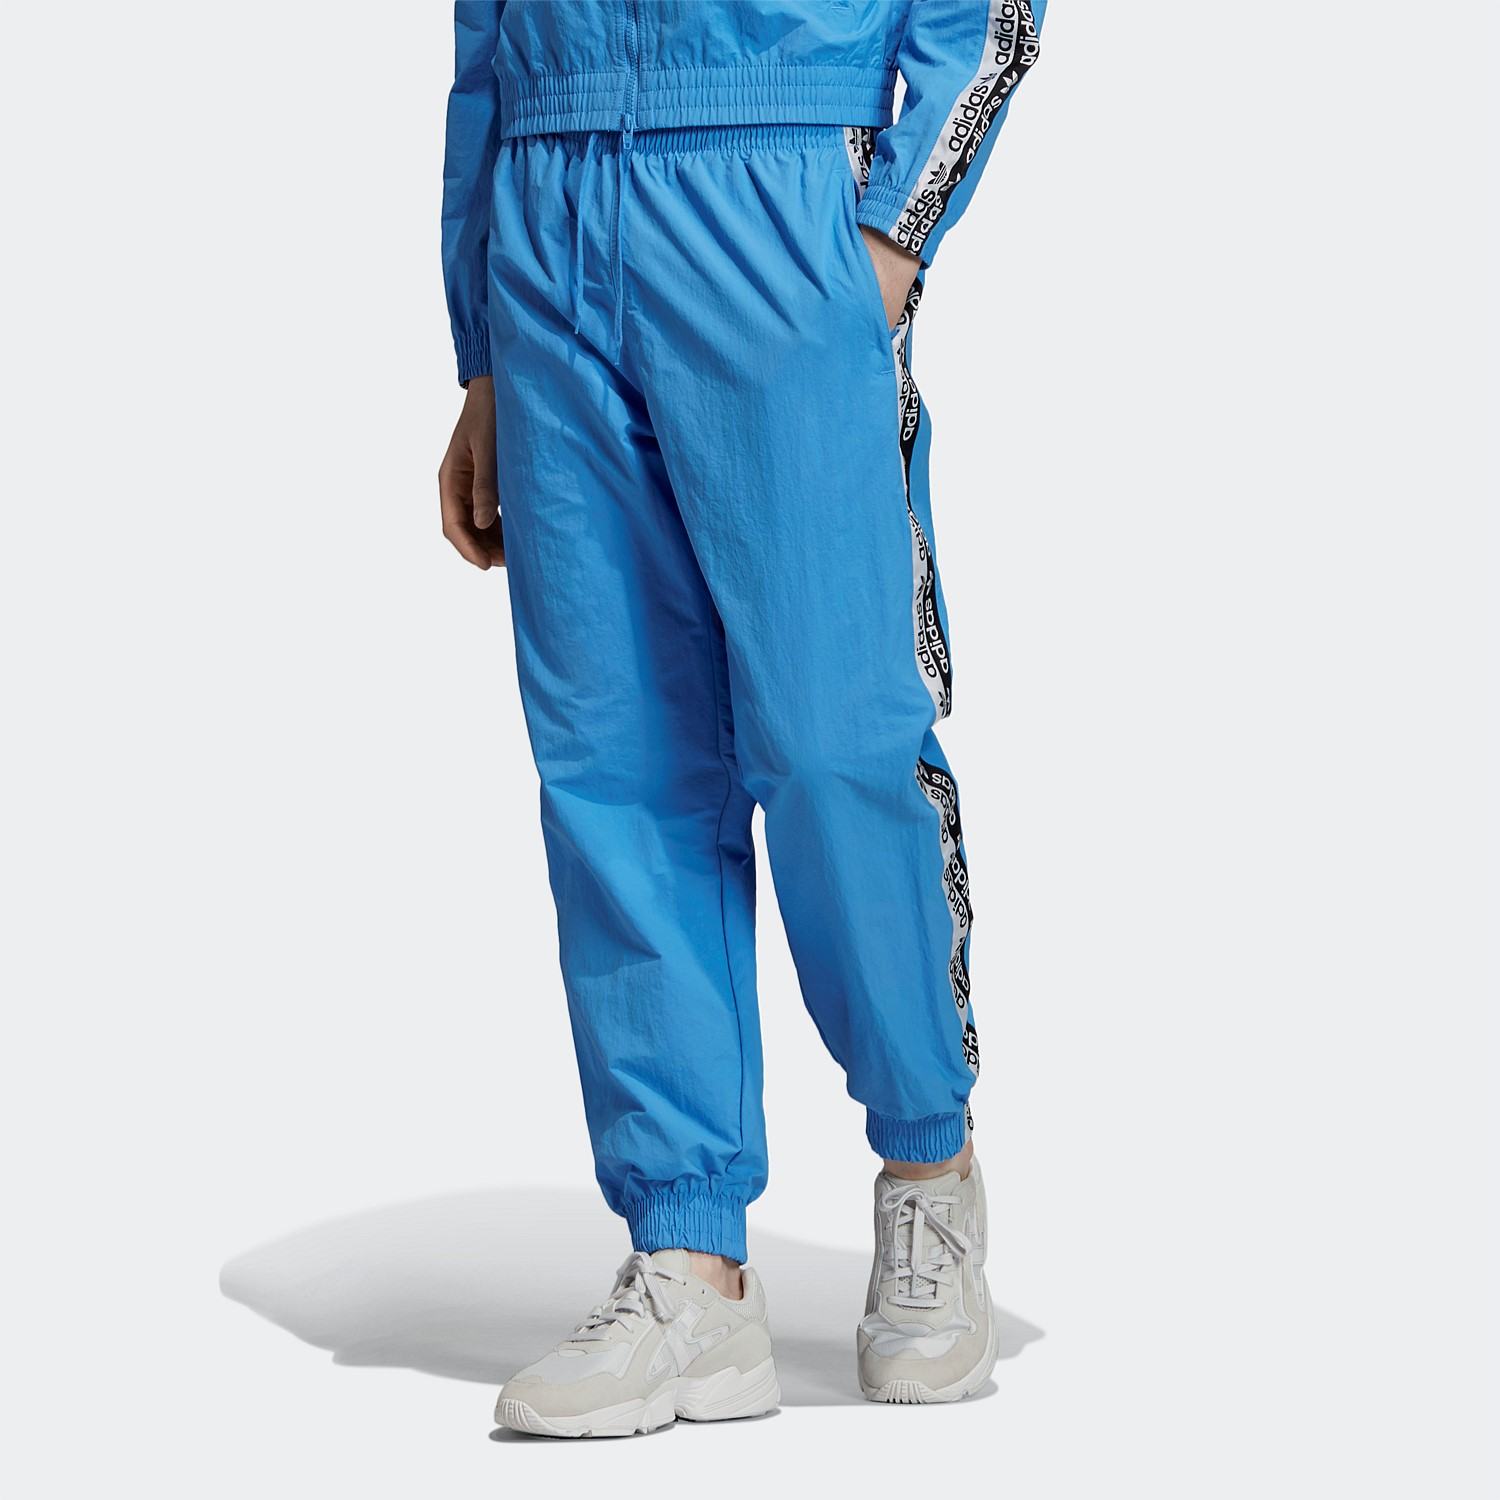 Adidas Brand | Shop Adidas Brands for Clothing, Accessories